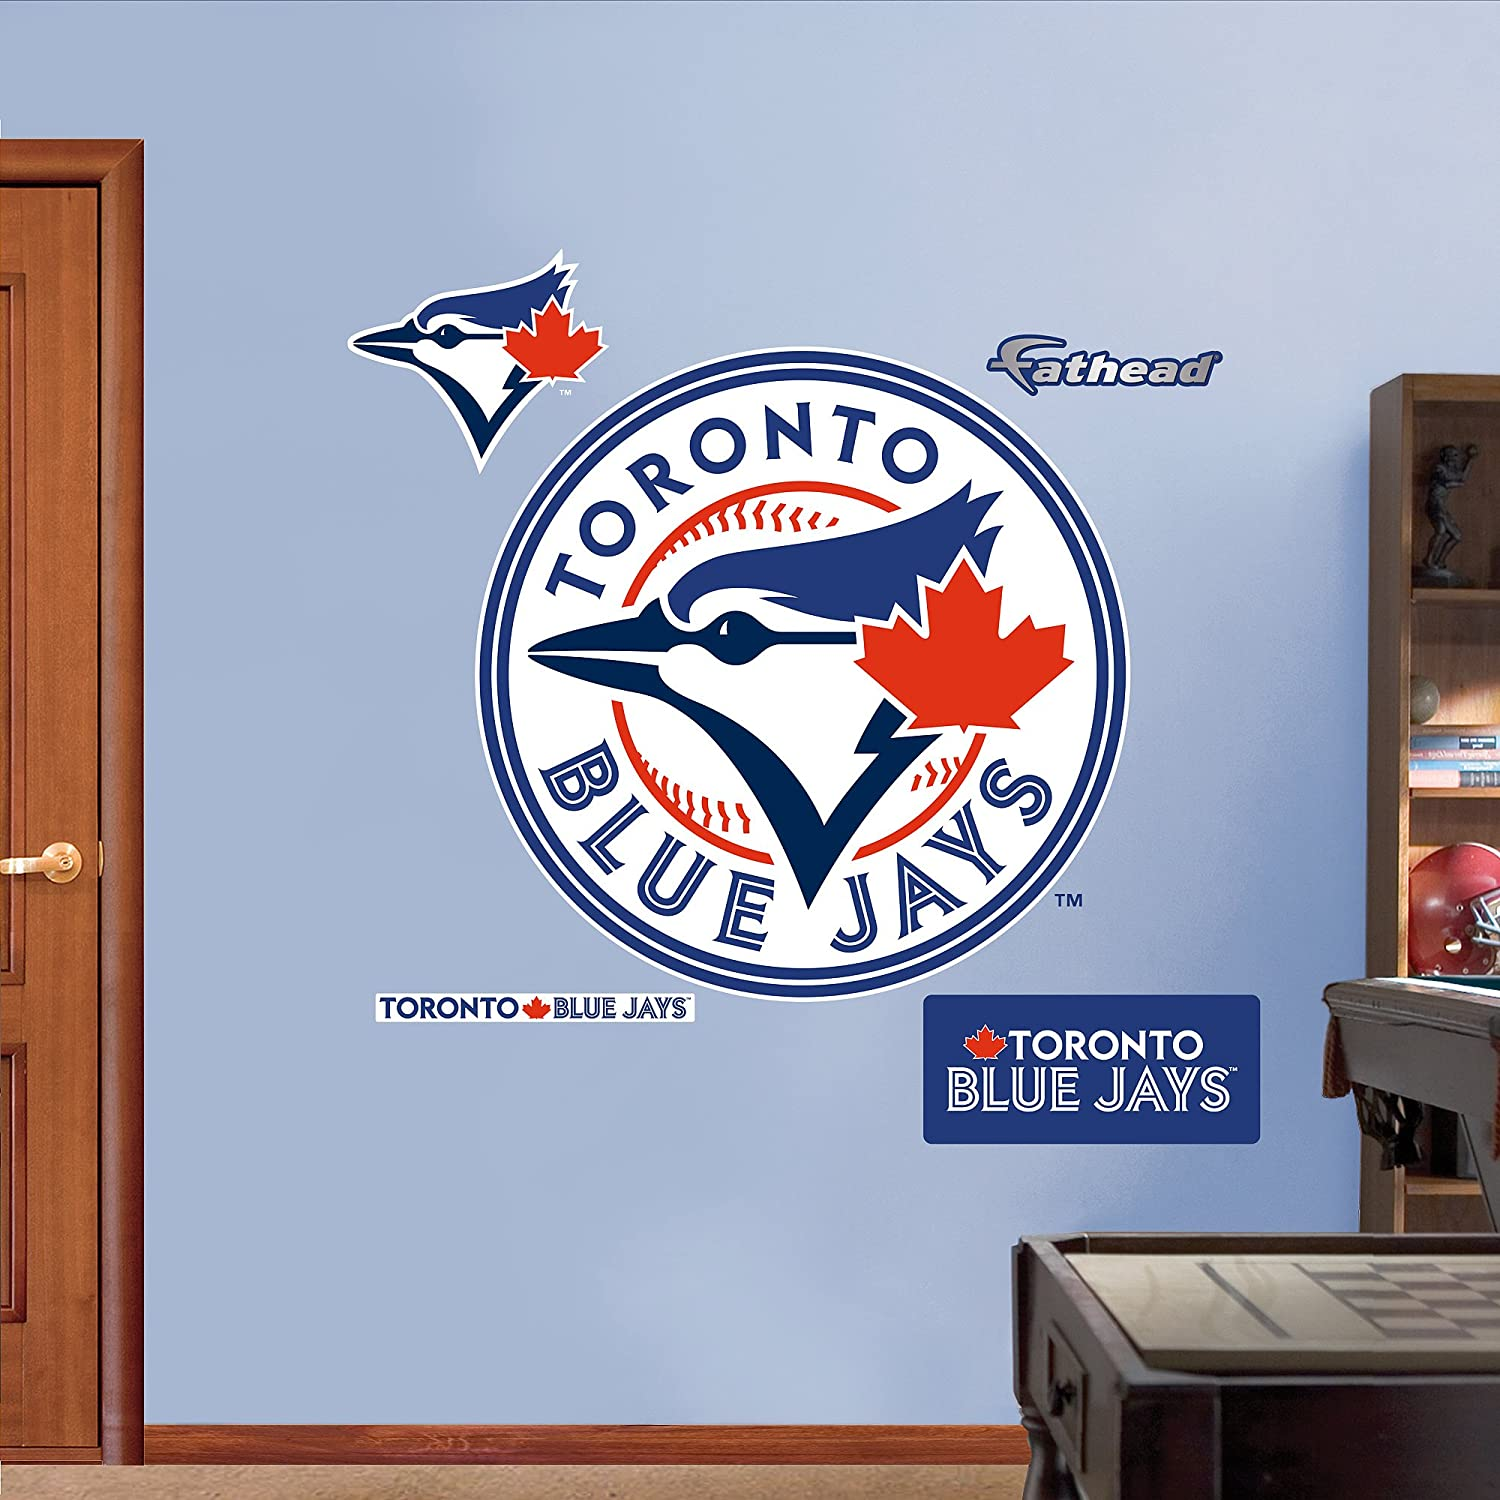 Fathead 63 63365 Wall Decal, Toronto Blue Jays Logo, Wall Decals   Amazon  Canada Part 34